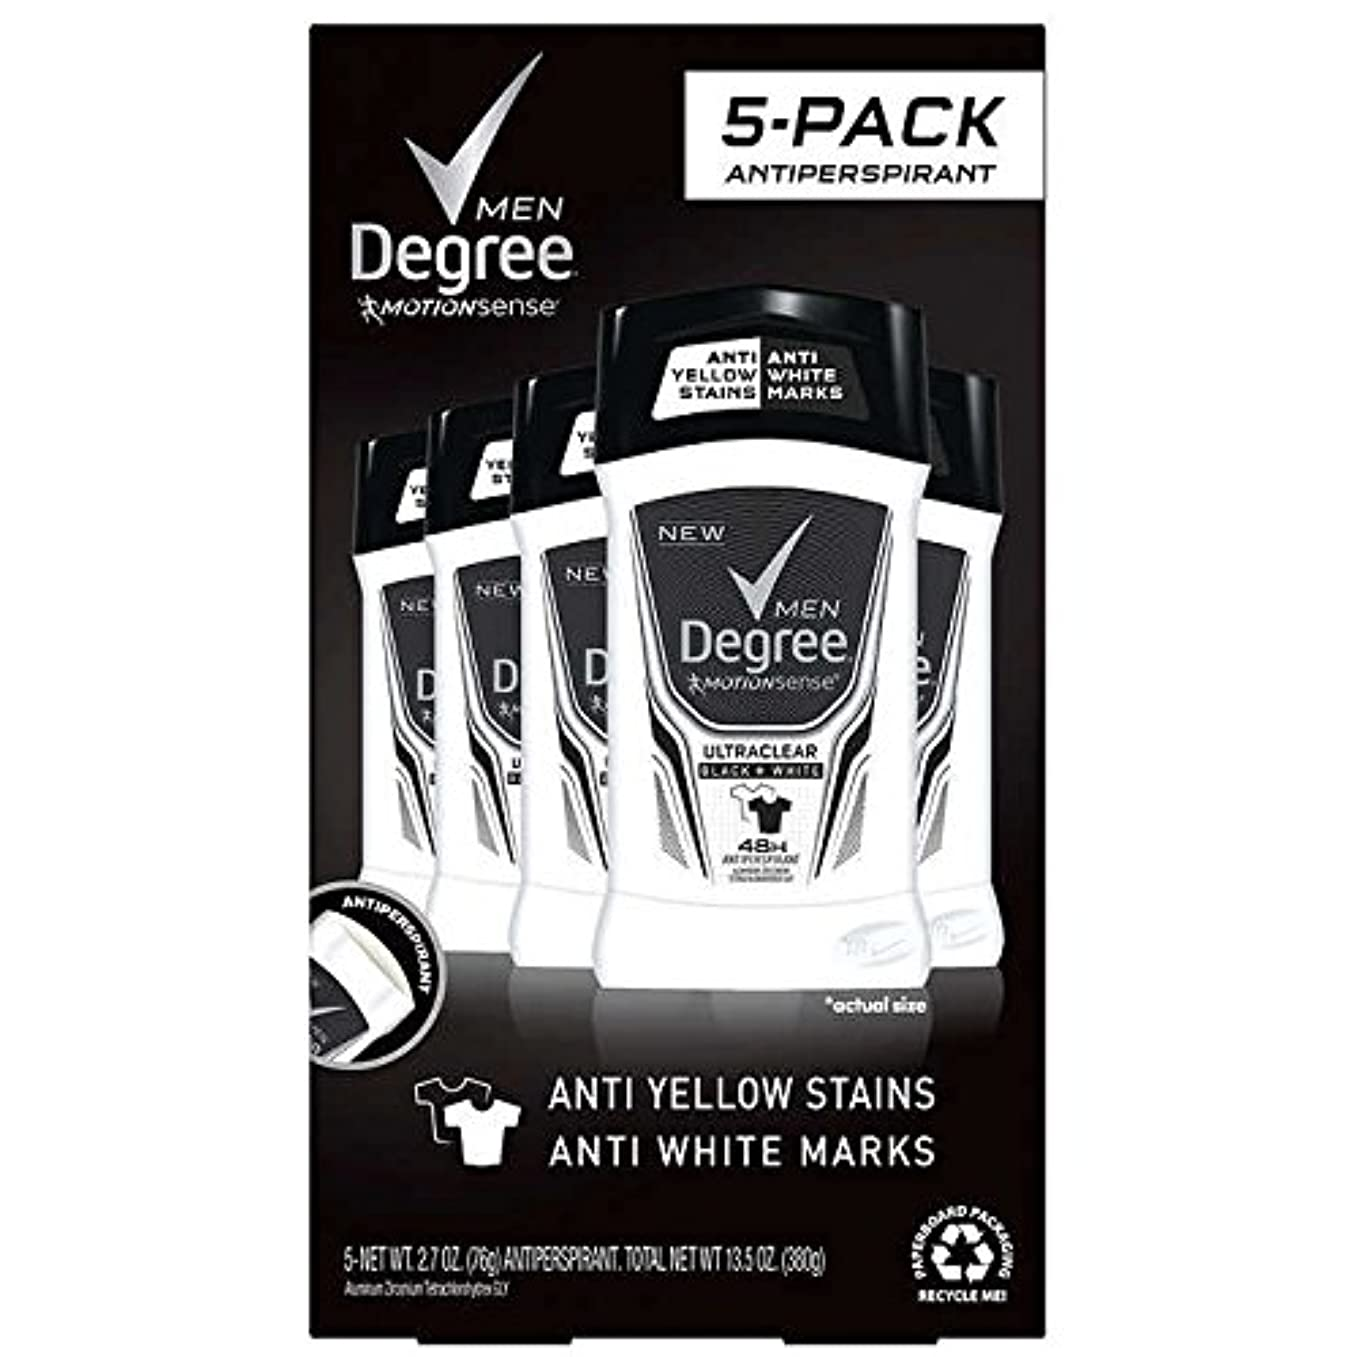 住むタイヤ墓Degree Men Ultra Clear Black + White Solid Deodorant 2.7oz (76g), 5-pack [並行輸入品]